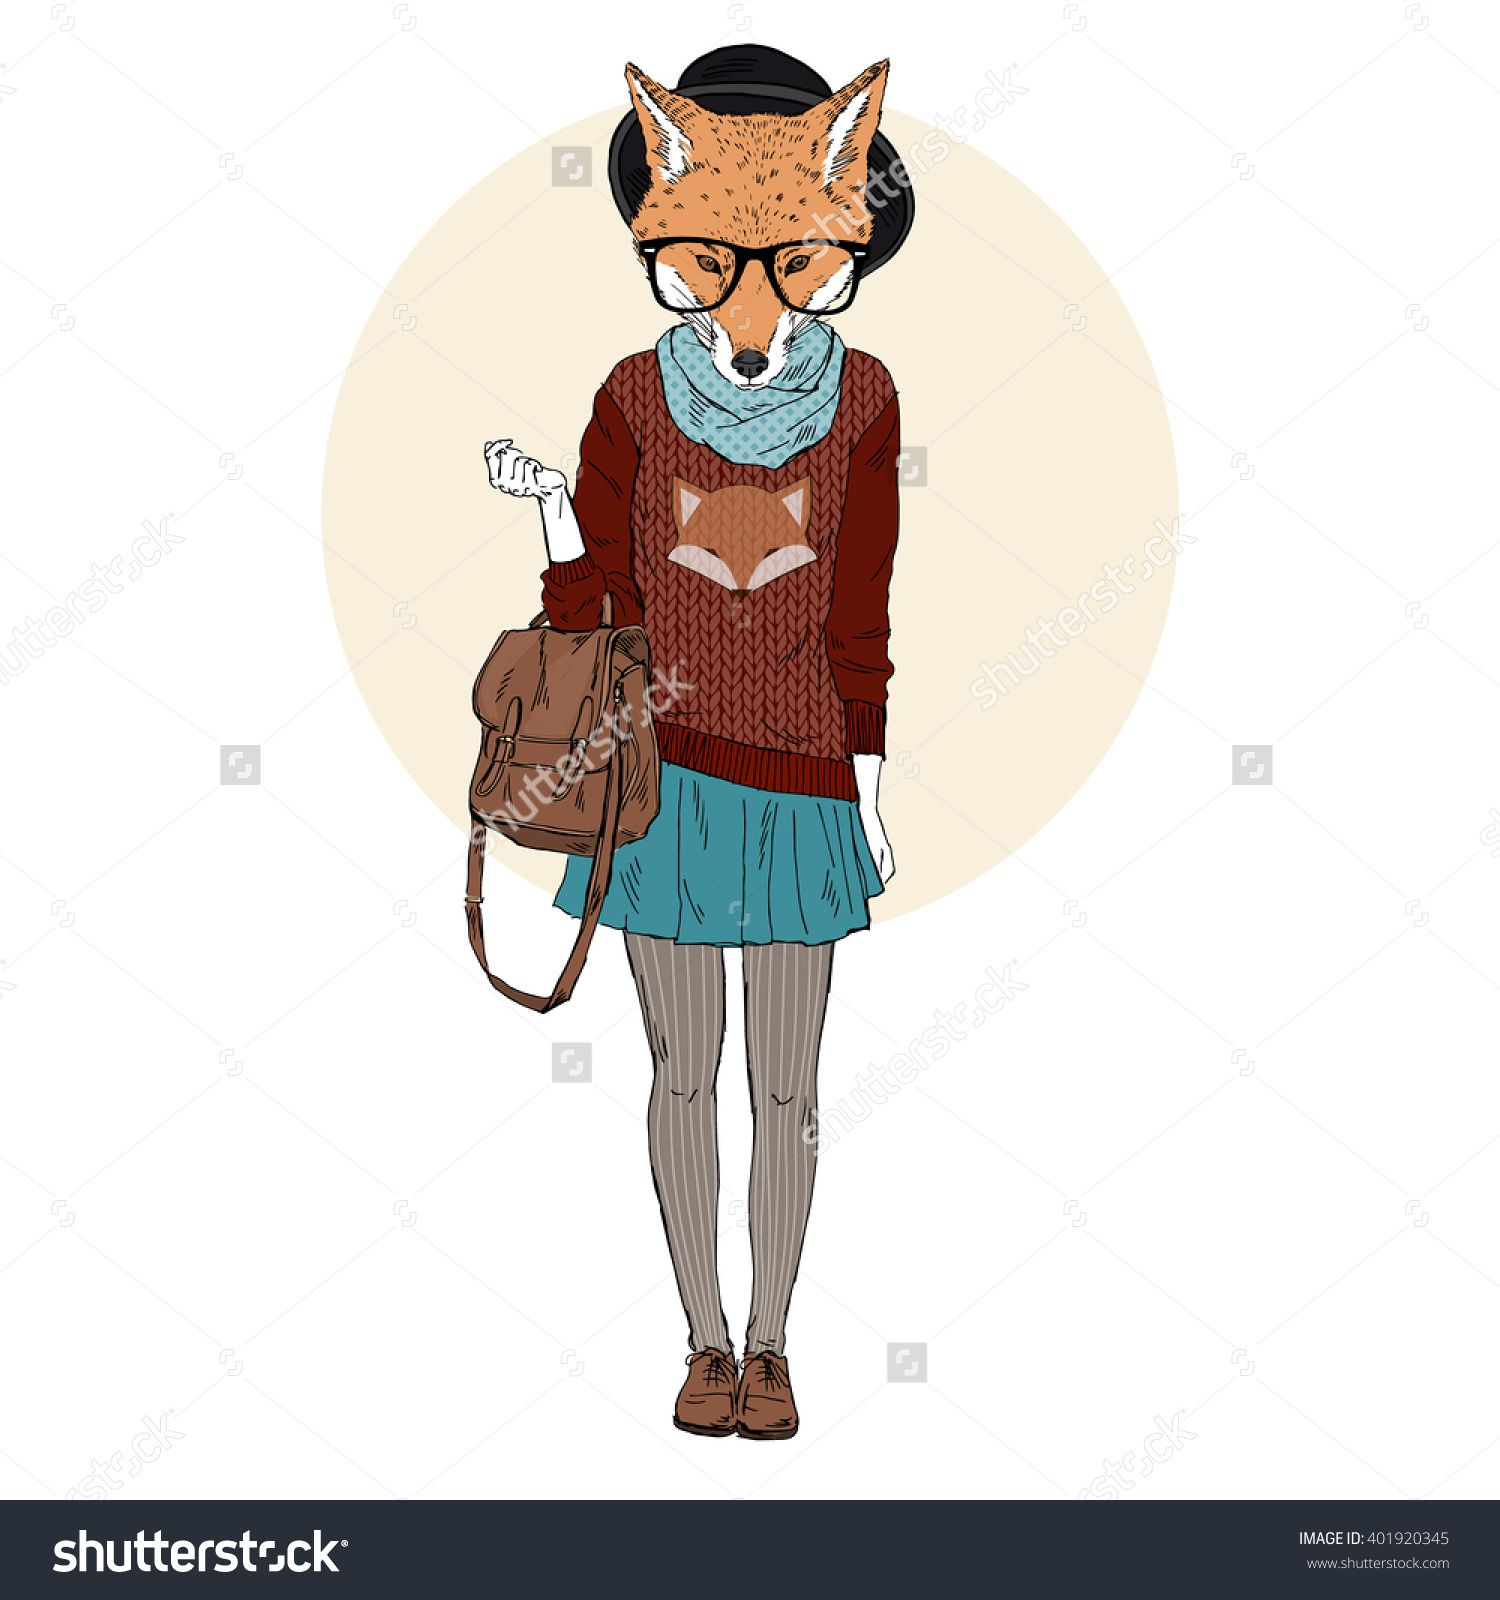 fox girl hipster in foxy pullover, furry art illustration, fashion animals